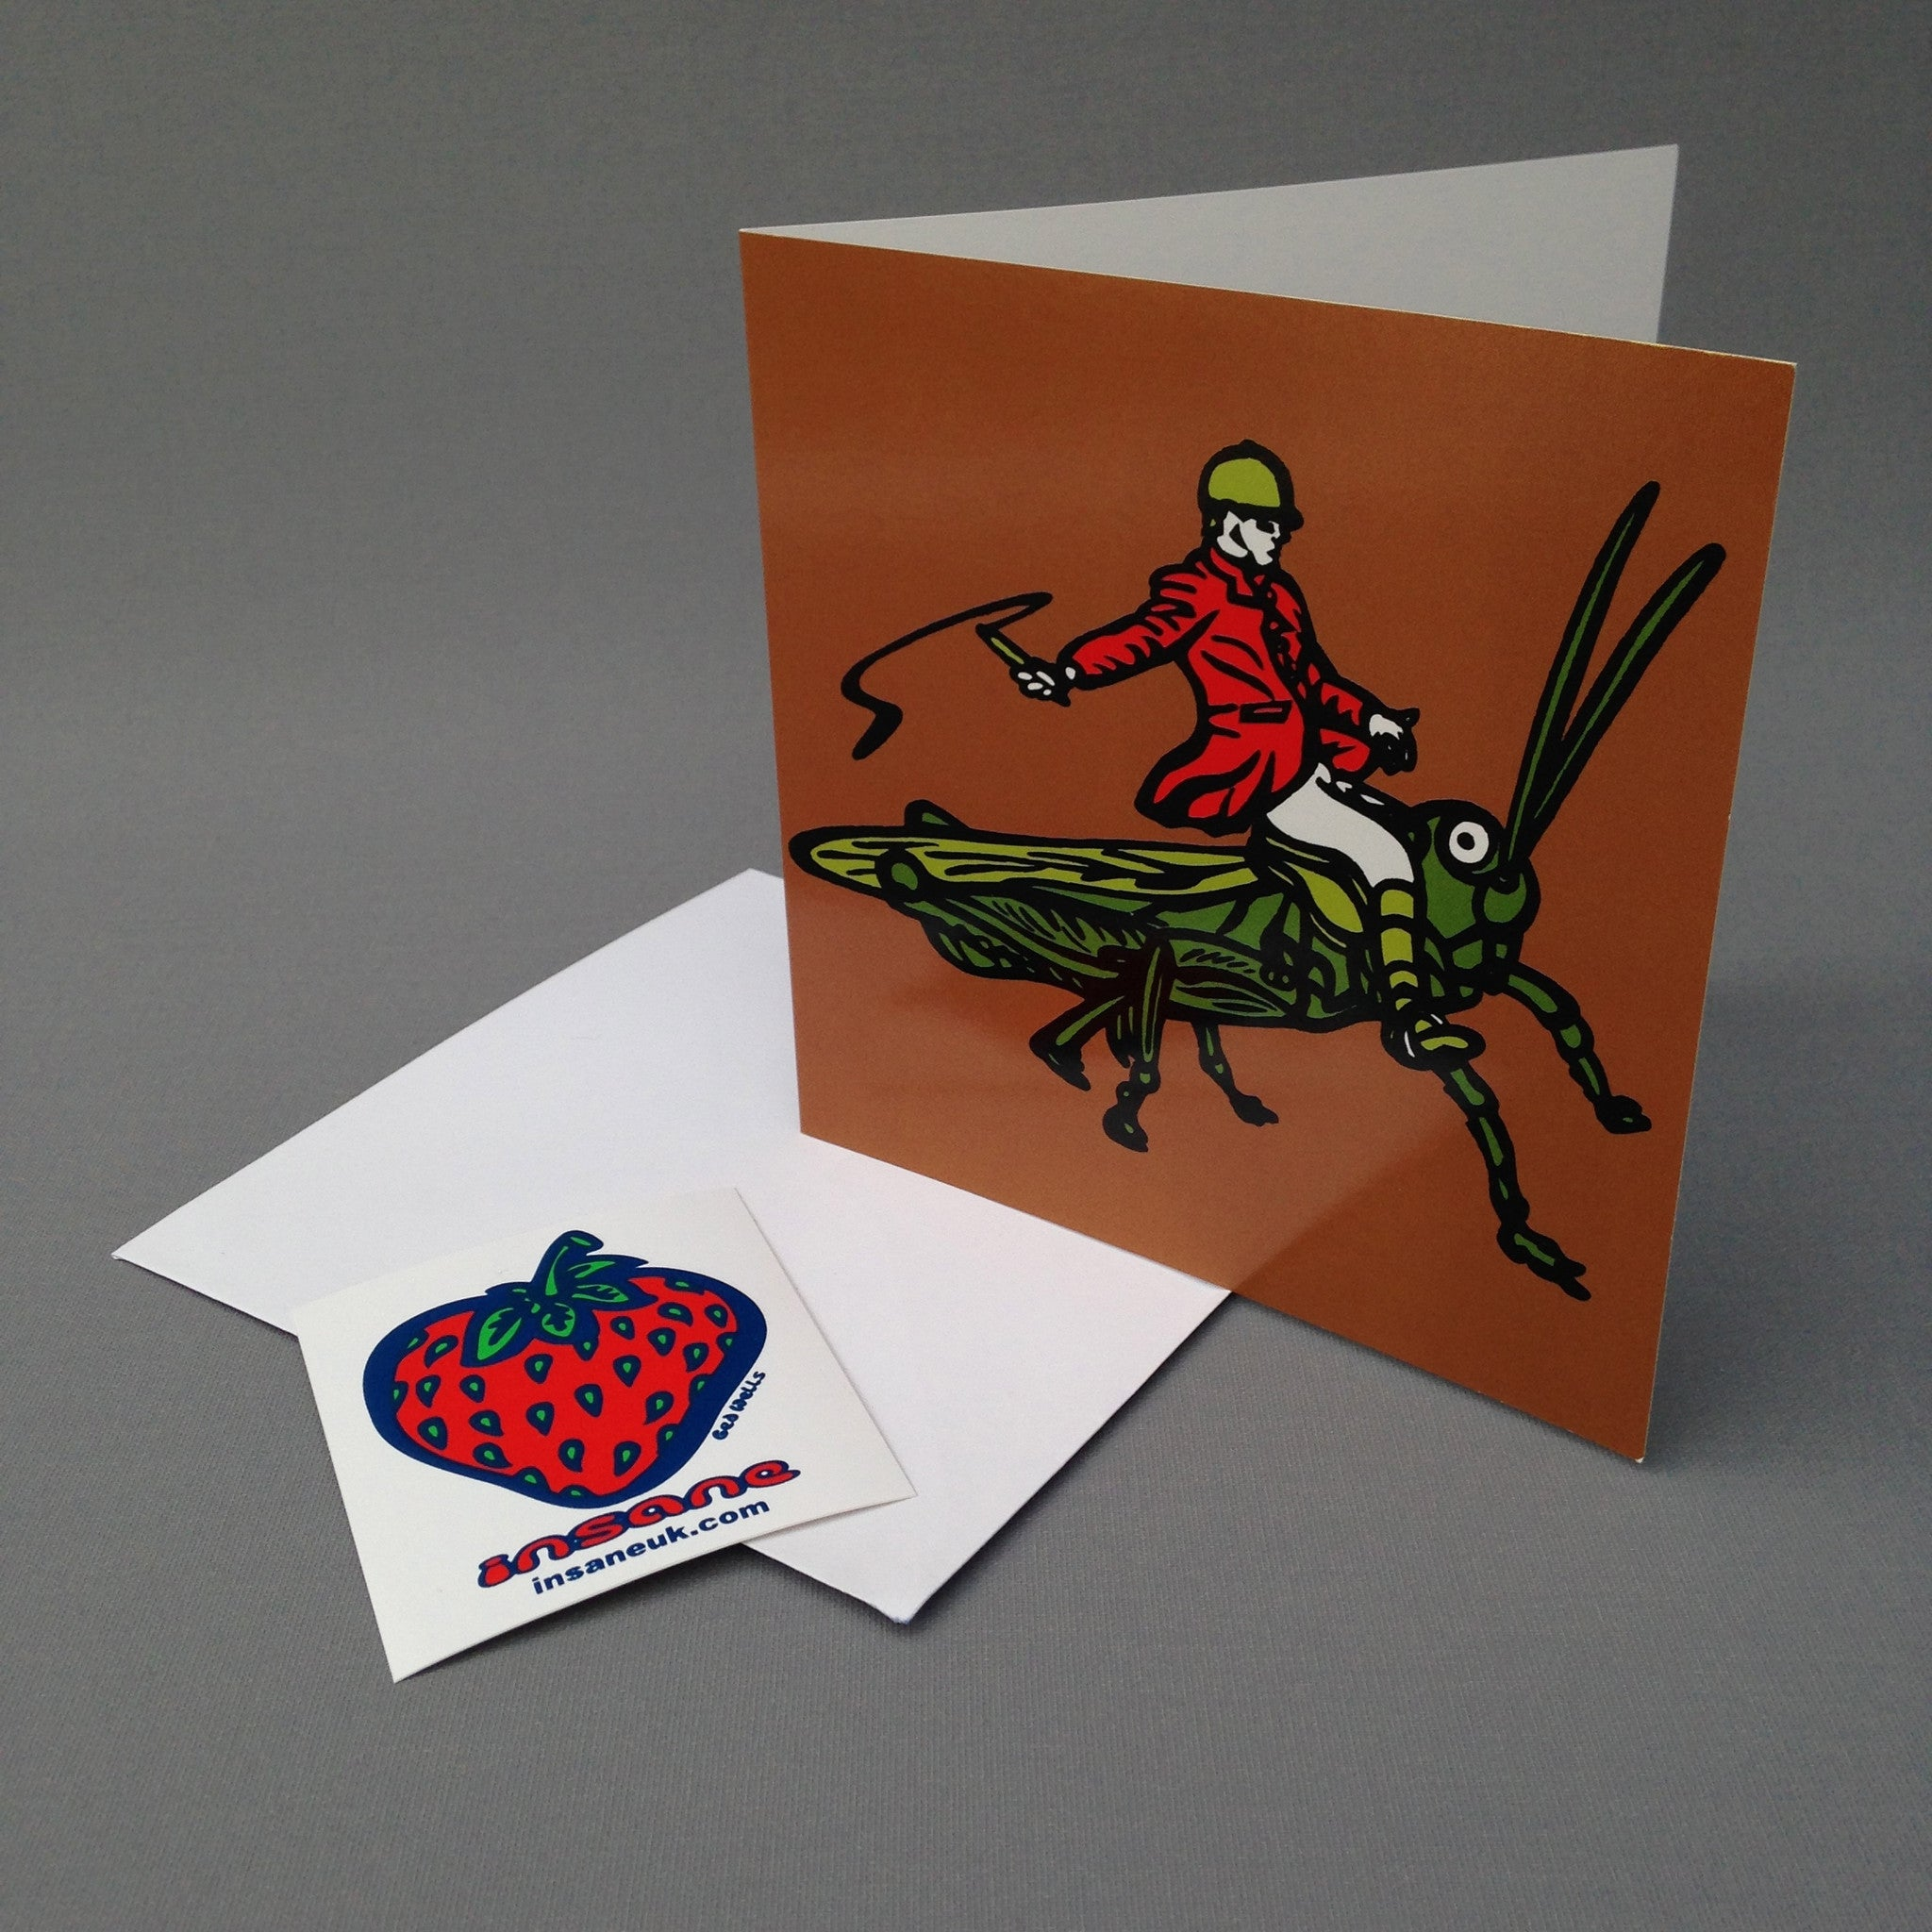 Locust Hunter greetings card.